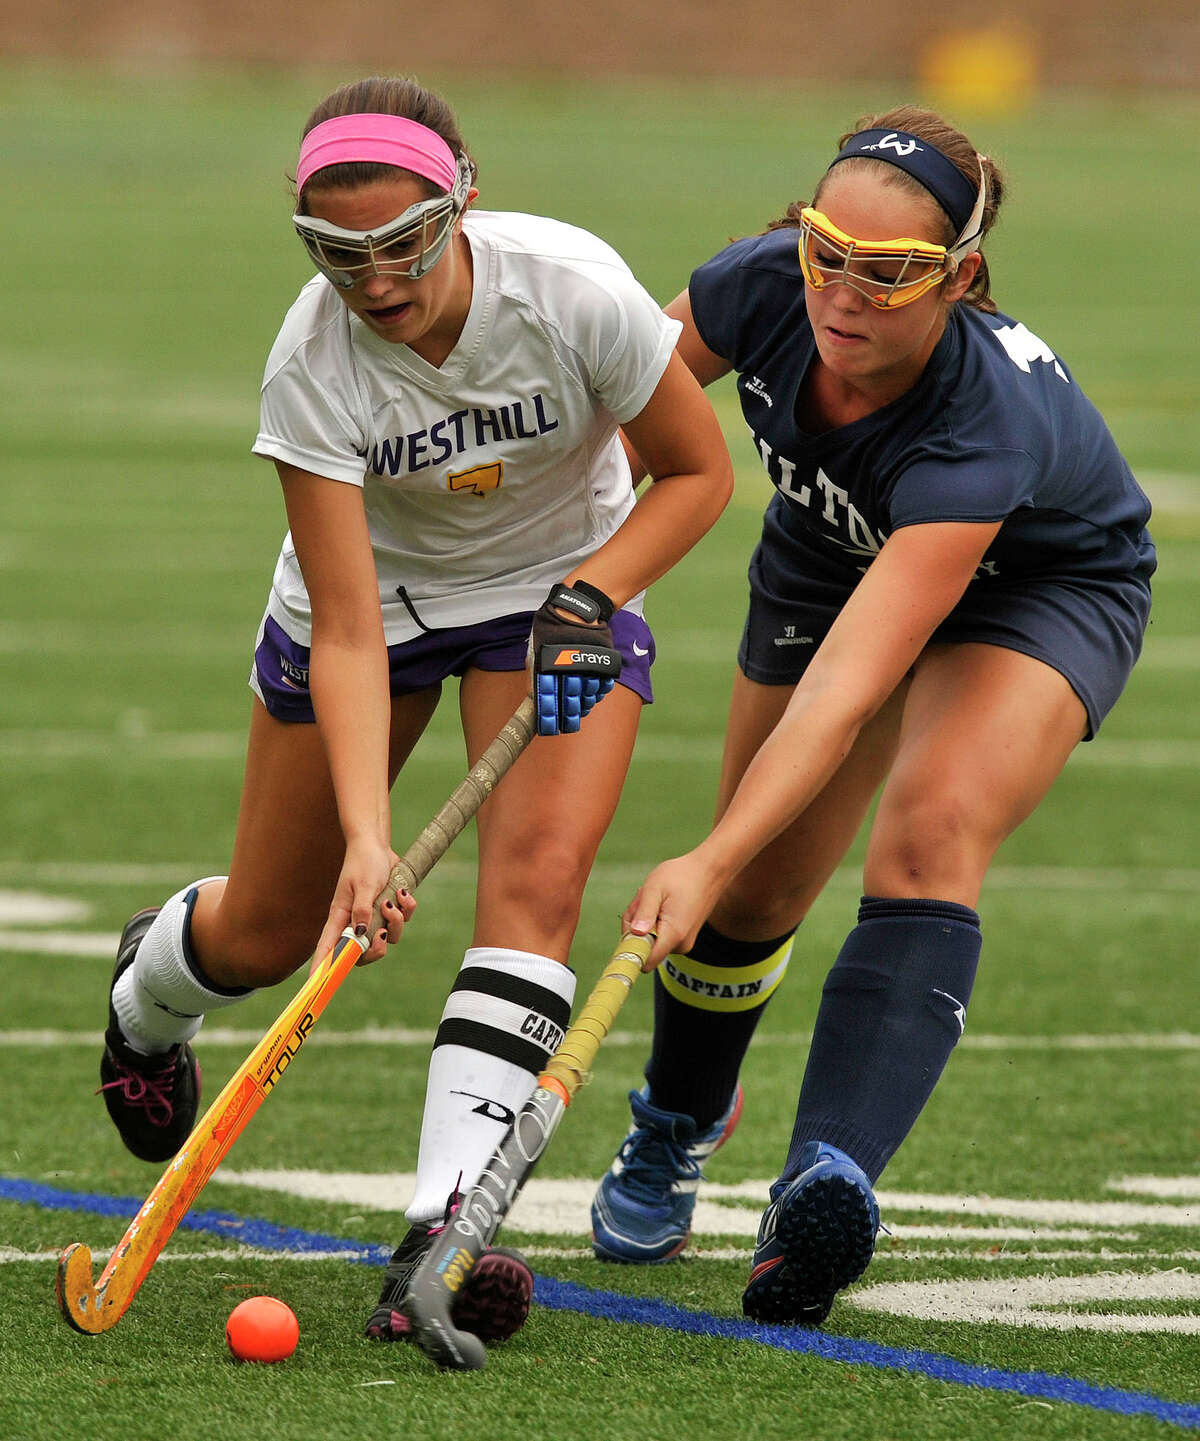 Westhill's Emma Hart is pressured by Wilton's Caroline Taverna during their field hockey game at Westhill High School in Stamford, Conn., on Monday, Sept. 29, 2014. Wilton won, 2-1.